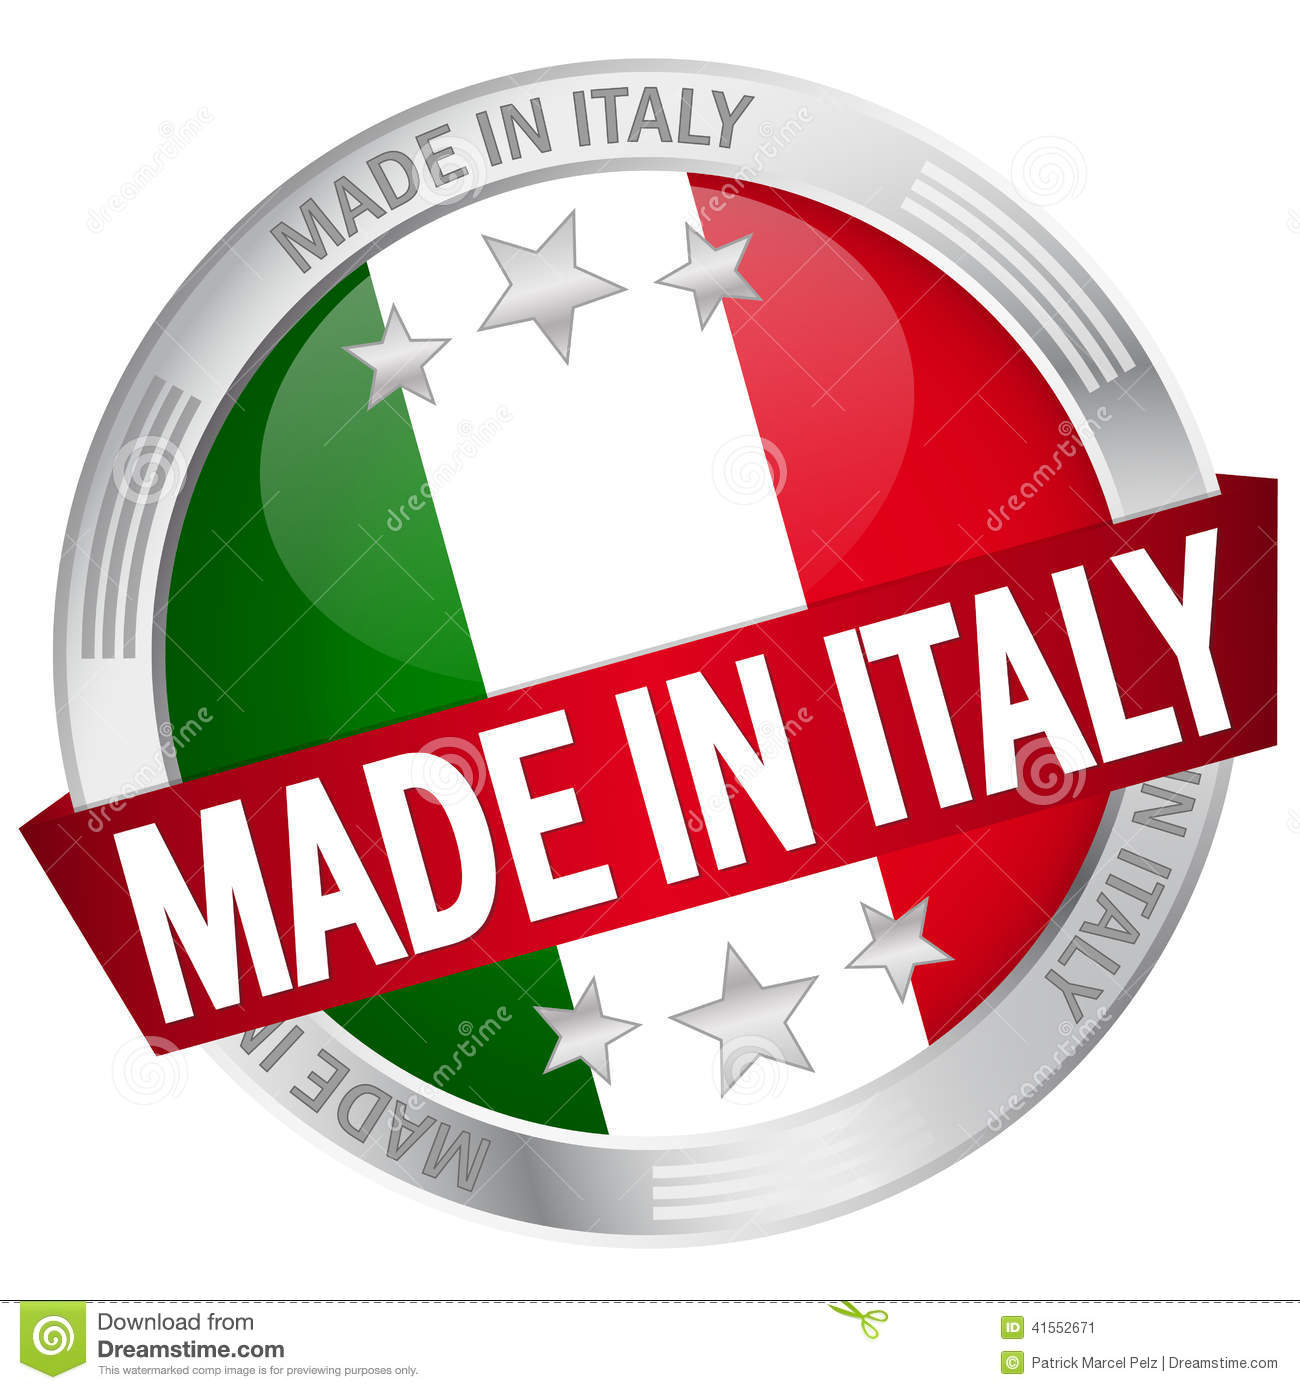 Made in italy online shop